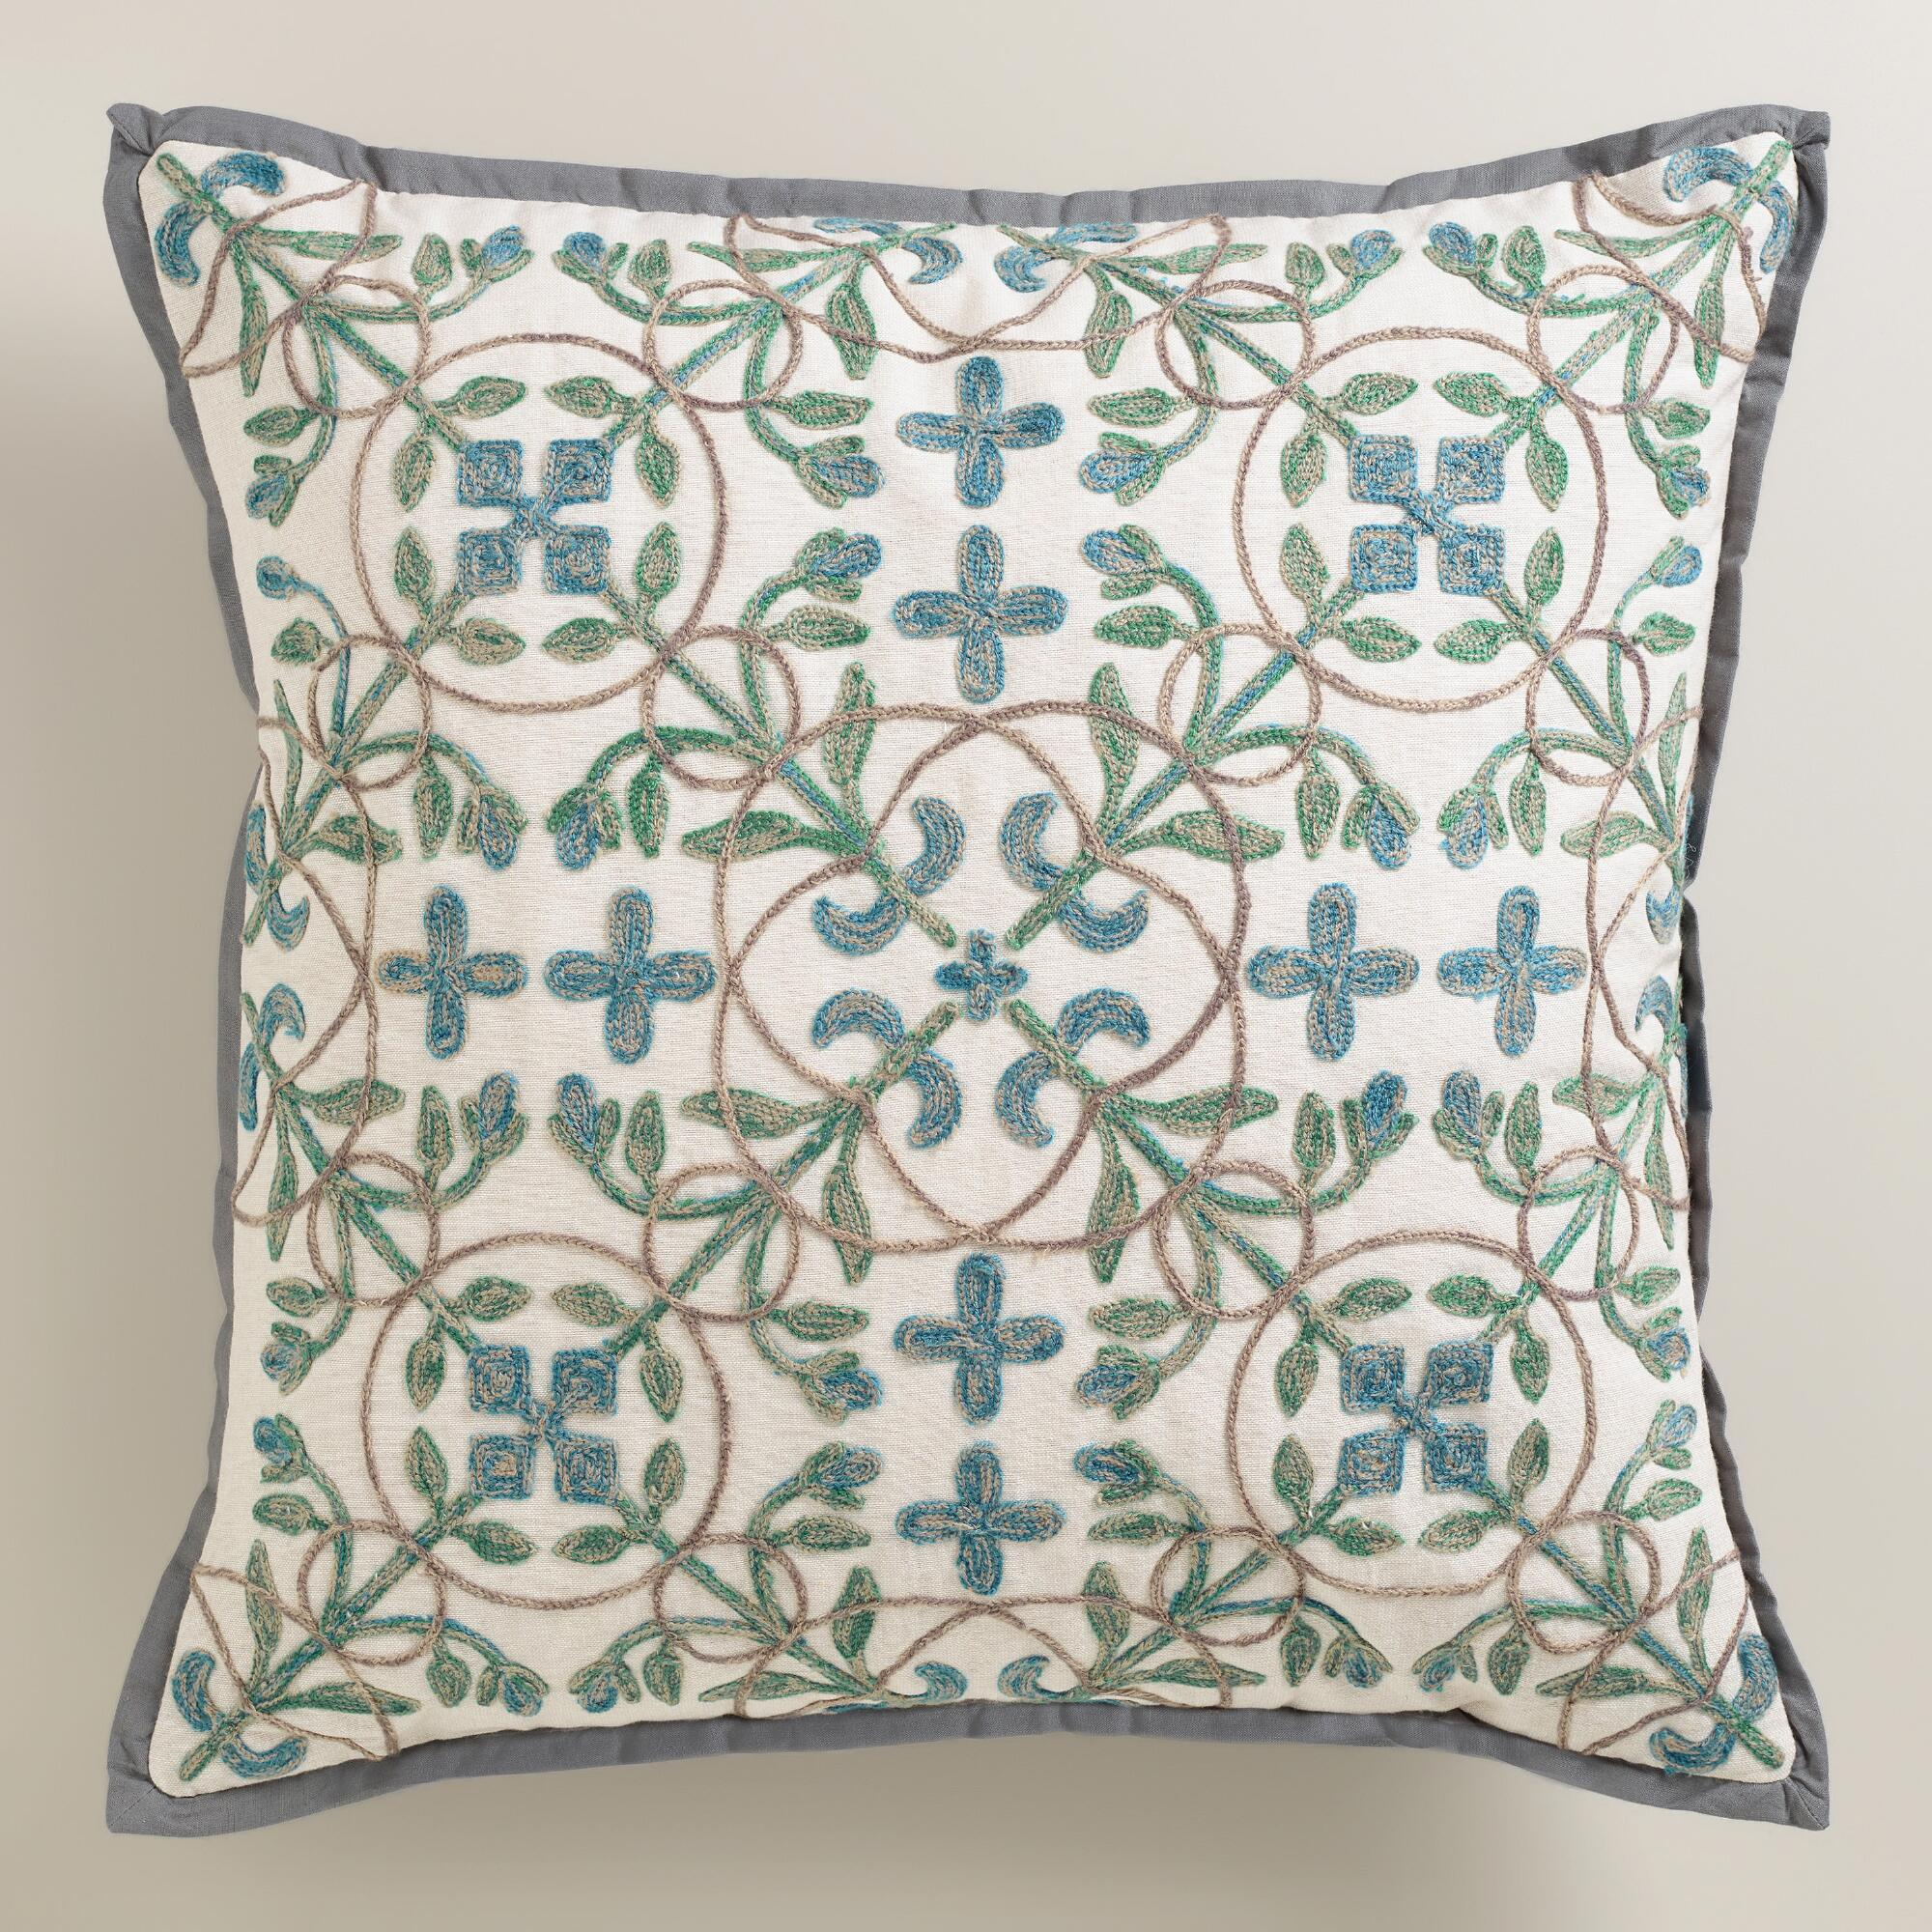 Throw Pillows Aqua Blue : Aqua Blue Tile Throw Pillow World Market